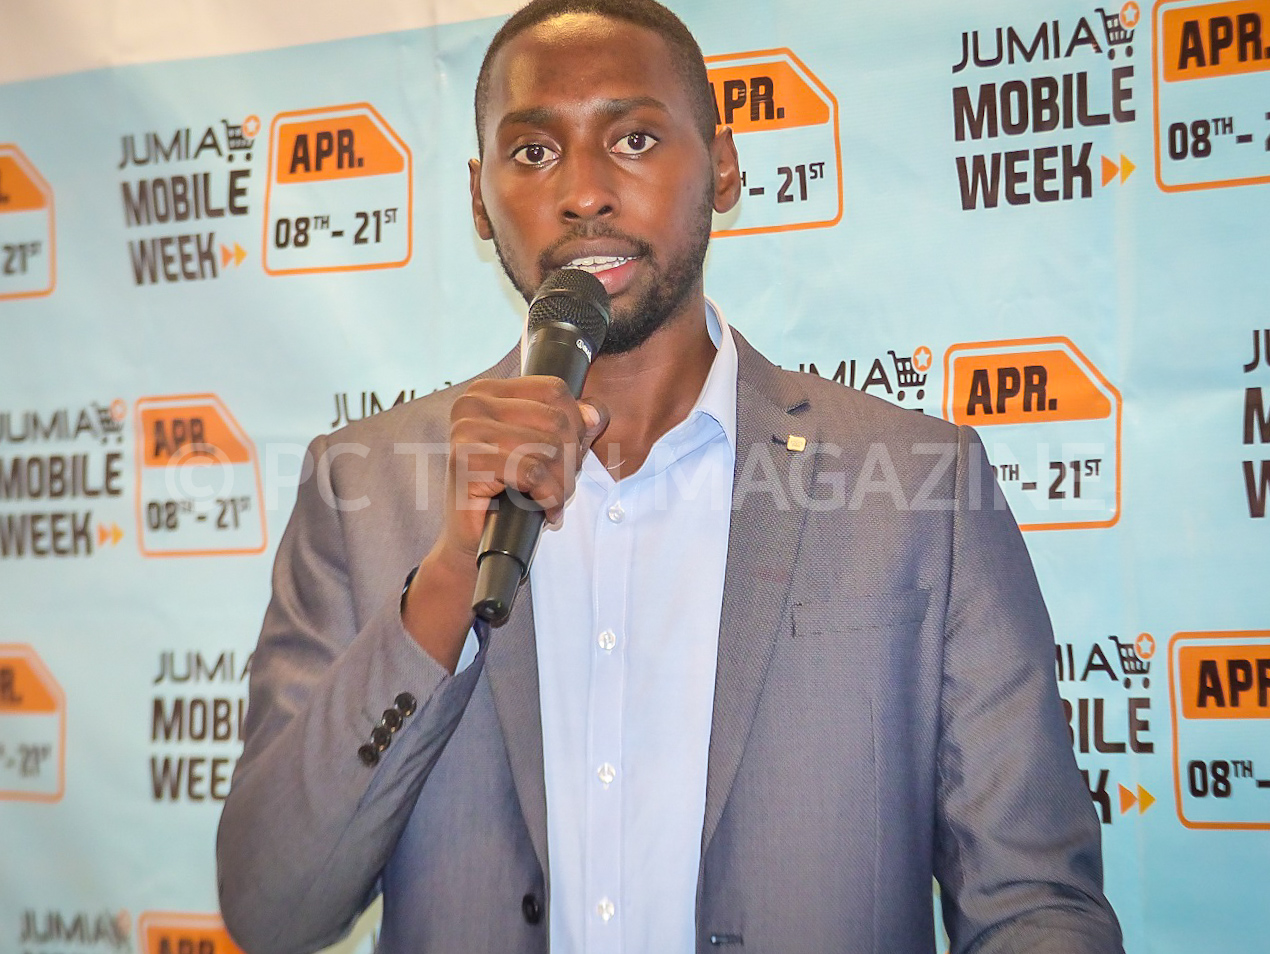 Photo of Jumia Introduces Insurance on its Products, Launches Mobile Week & Unveils Mobile Report